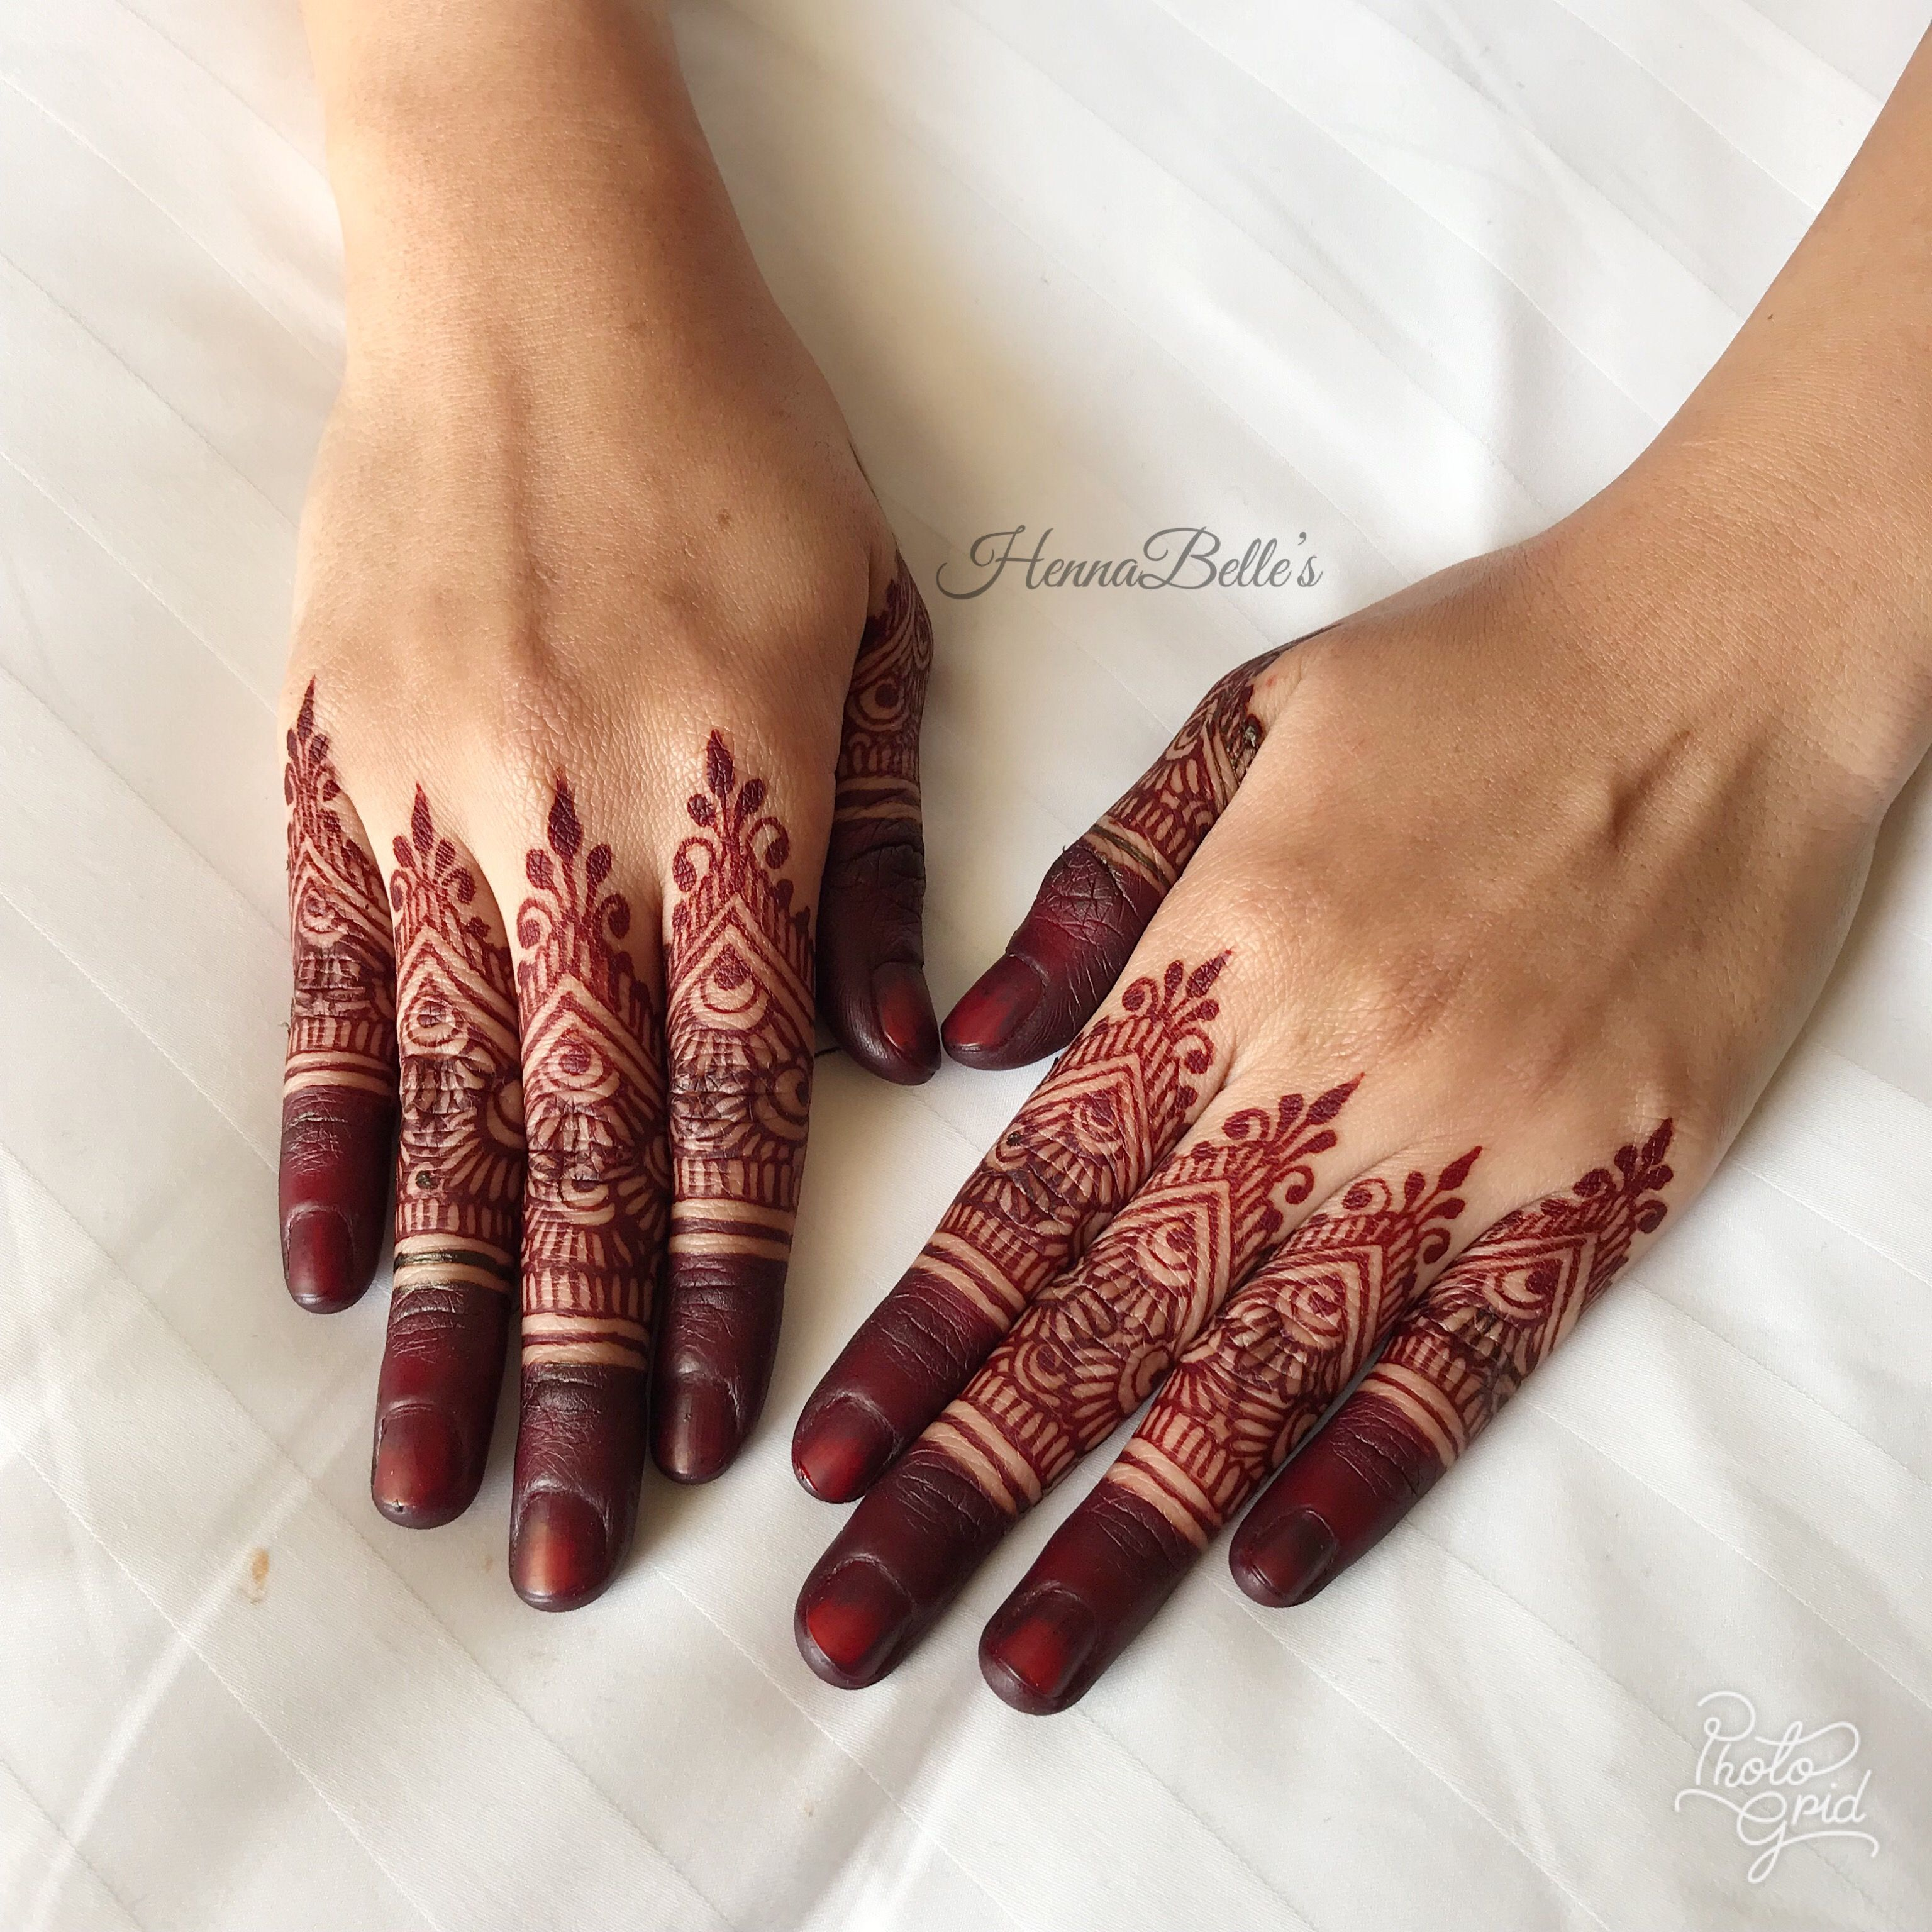 Pin By Hennabelle On Fingercaps By Hennabelle Finger Henna